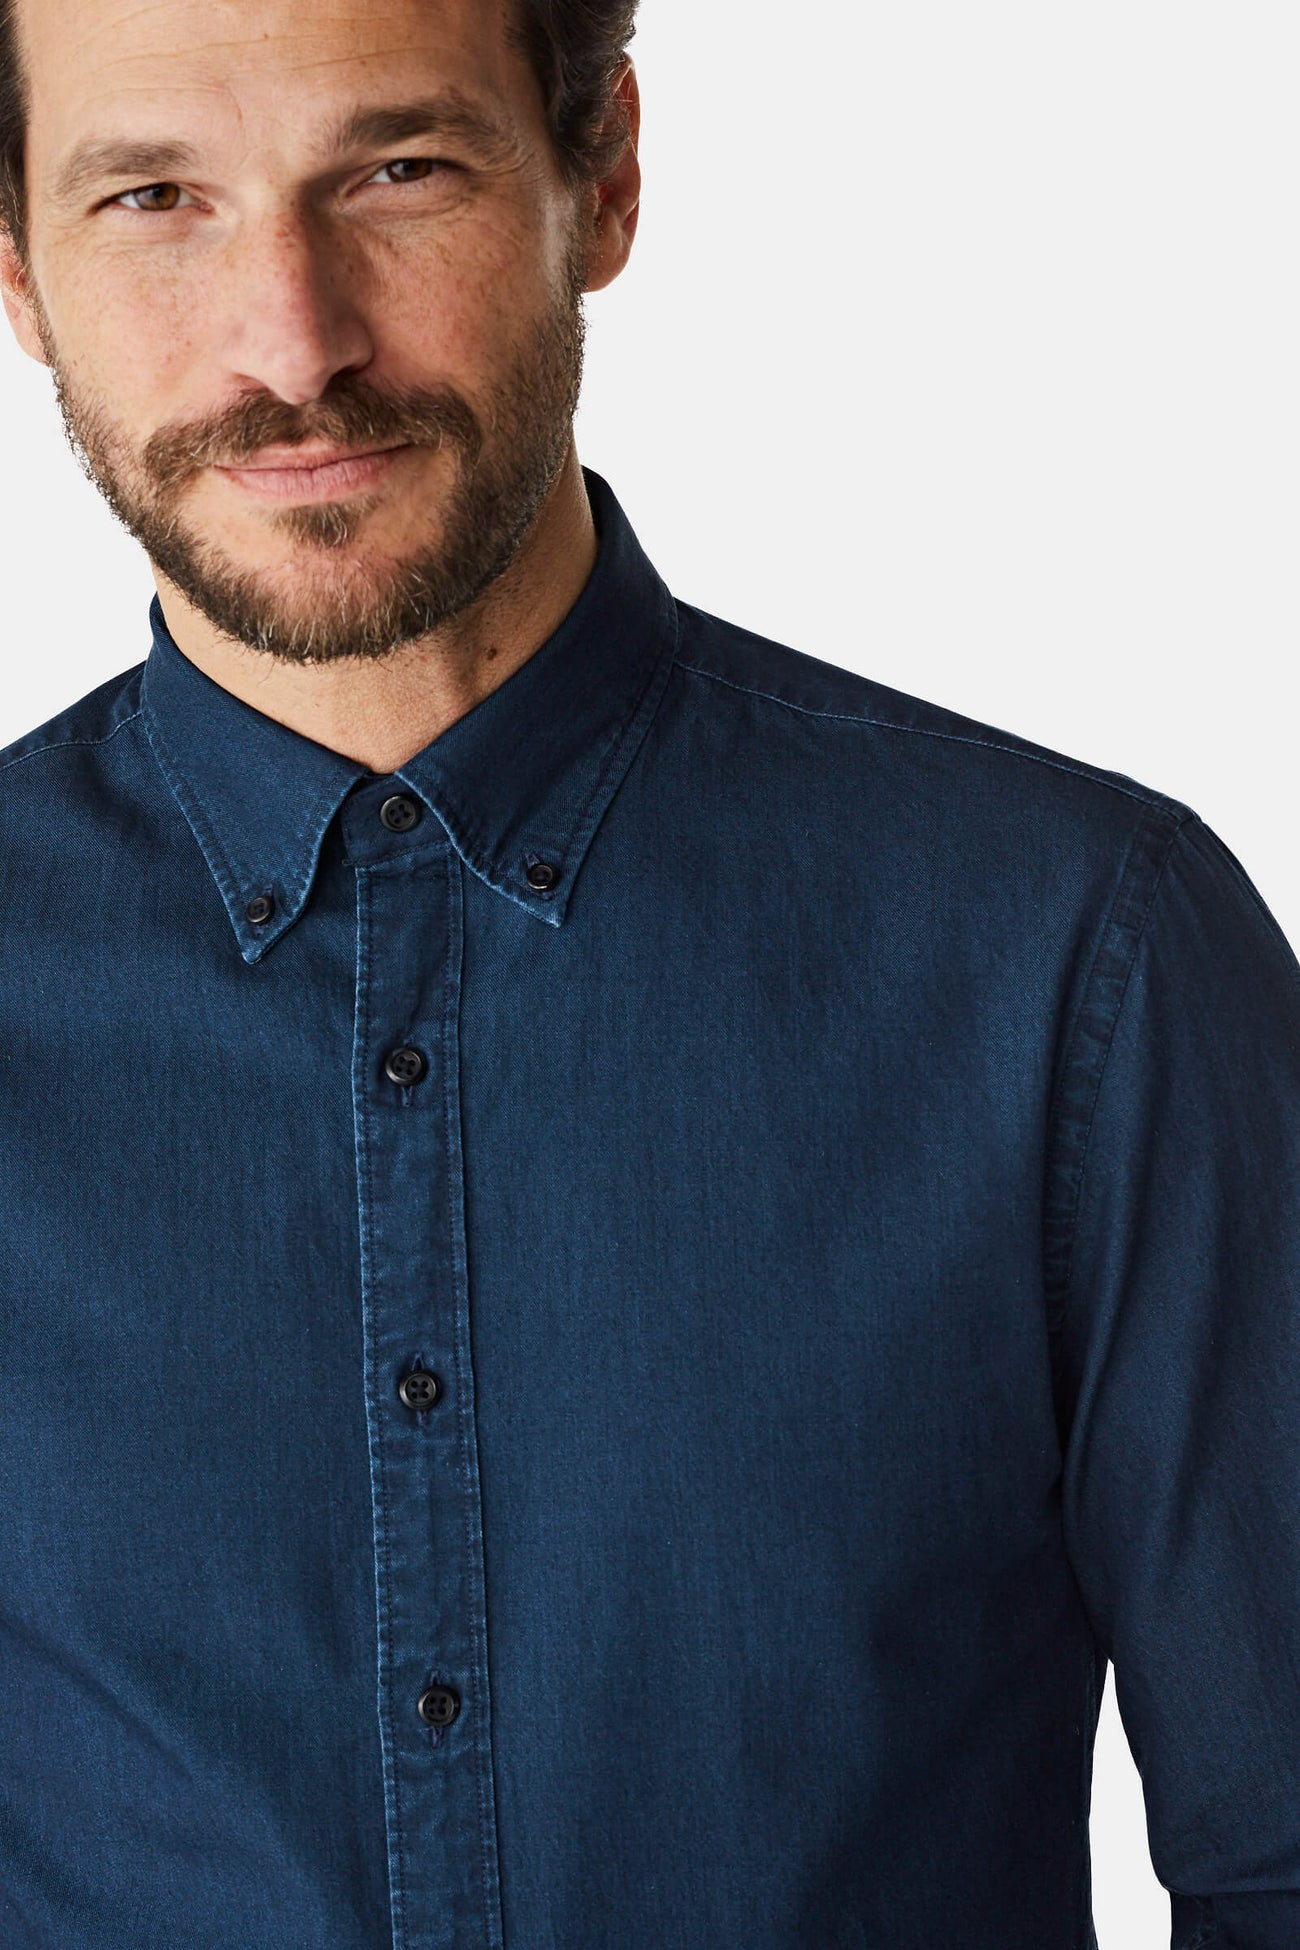 McG Regular fit denim overhemd met button-down kraag